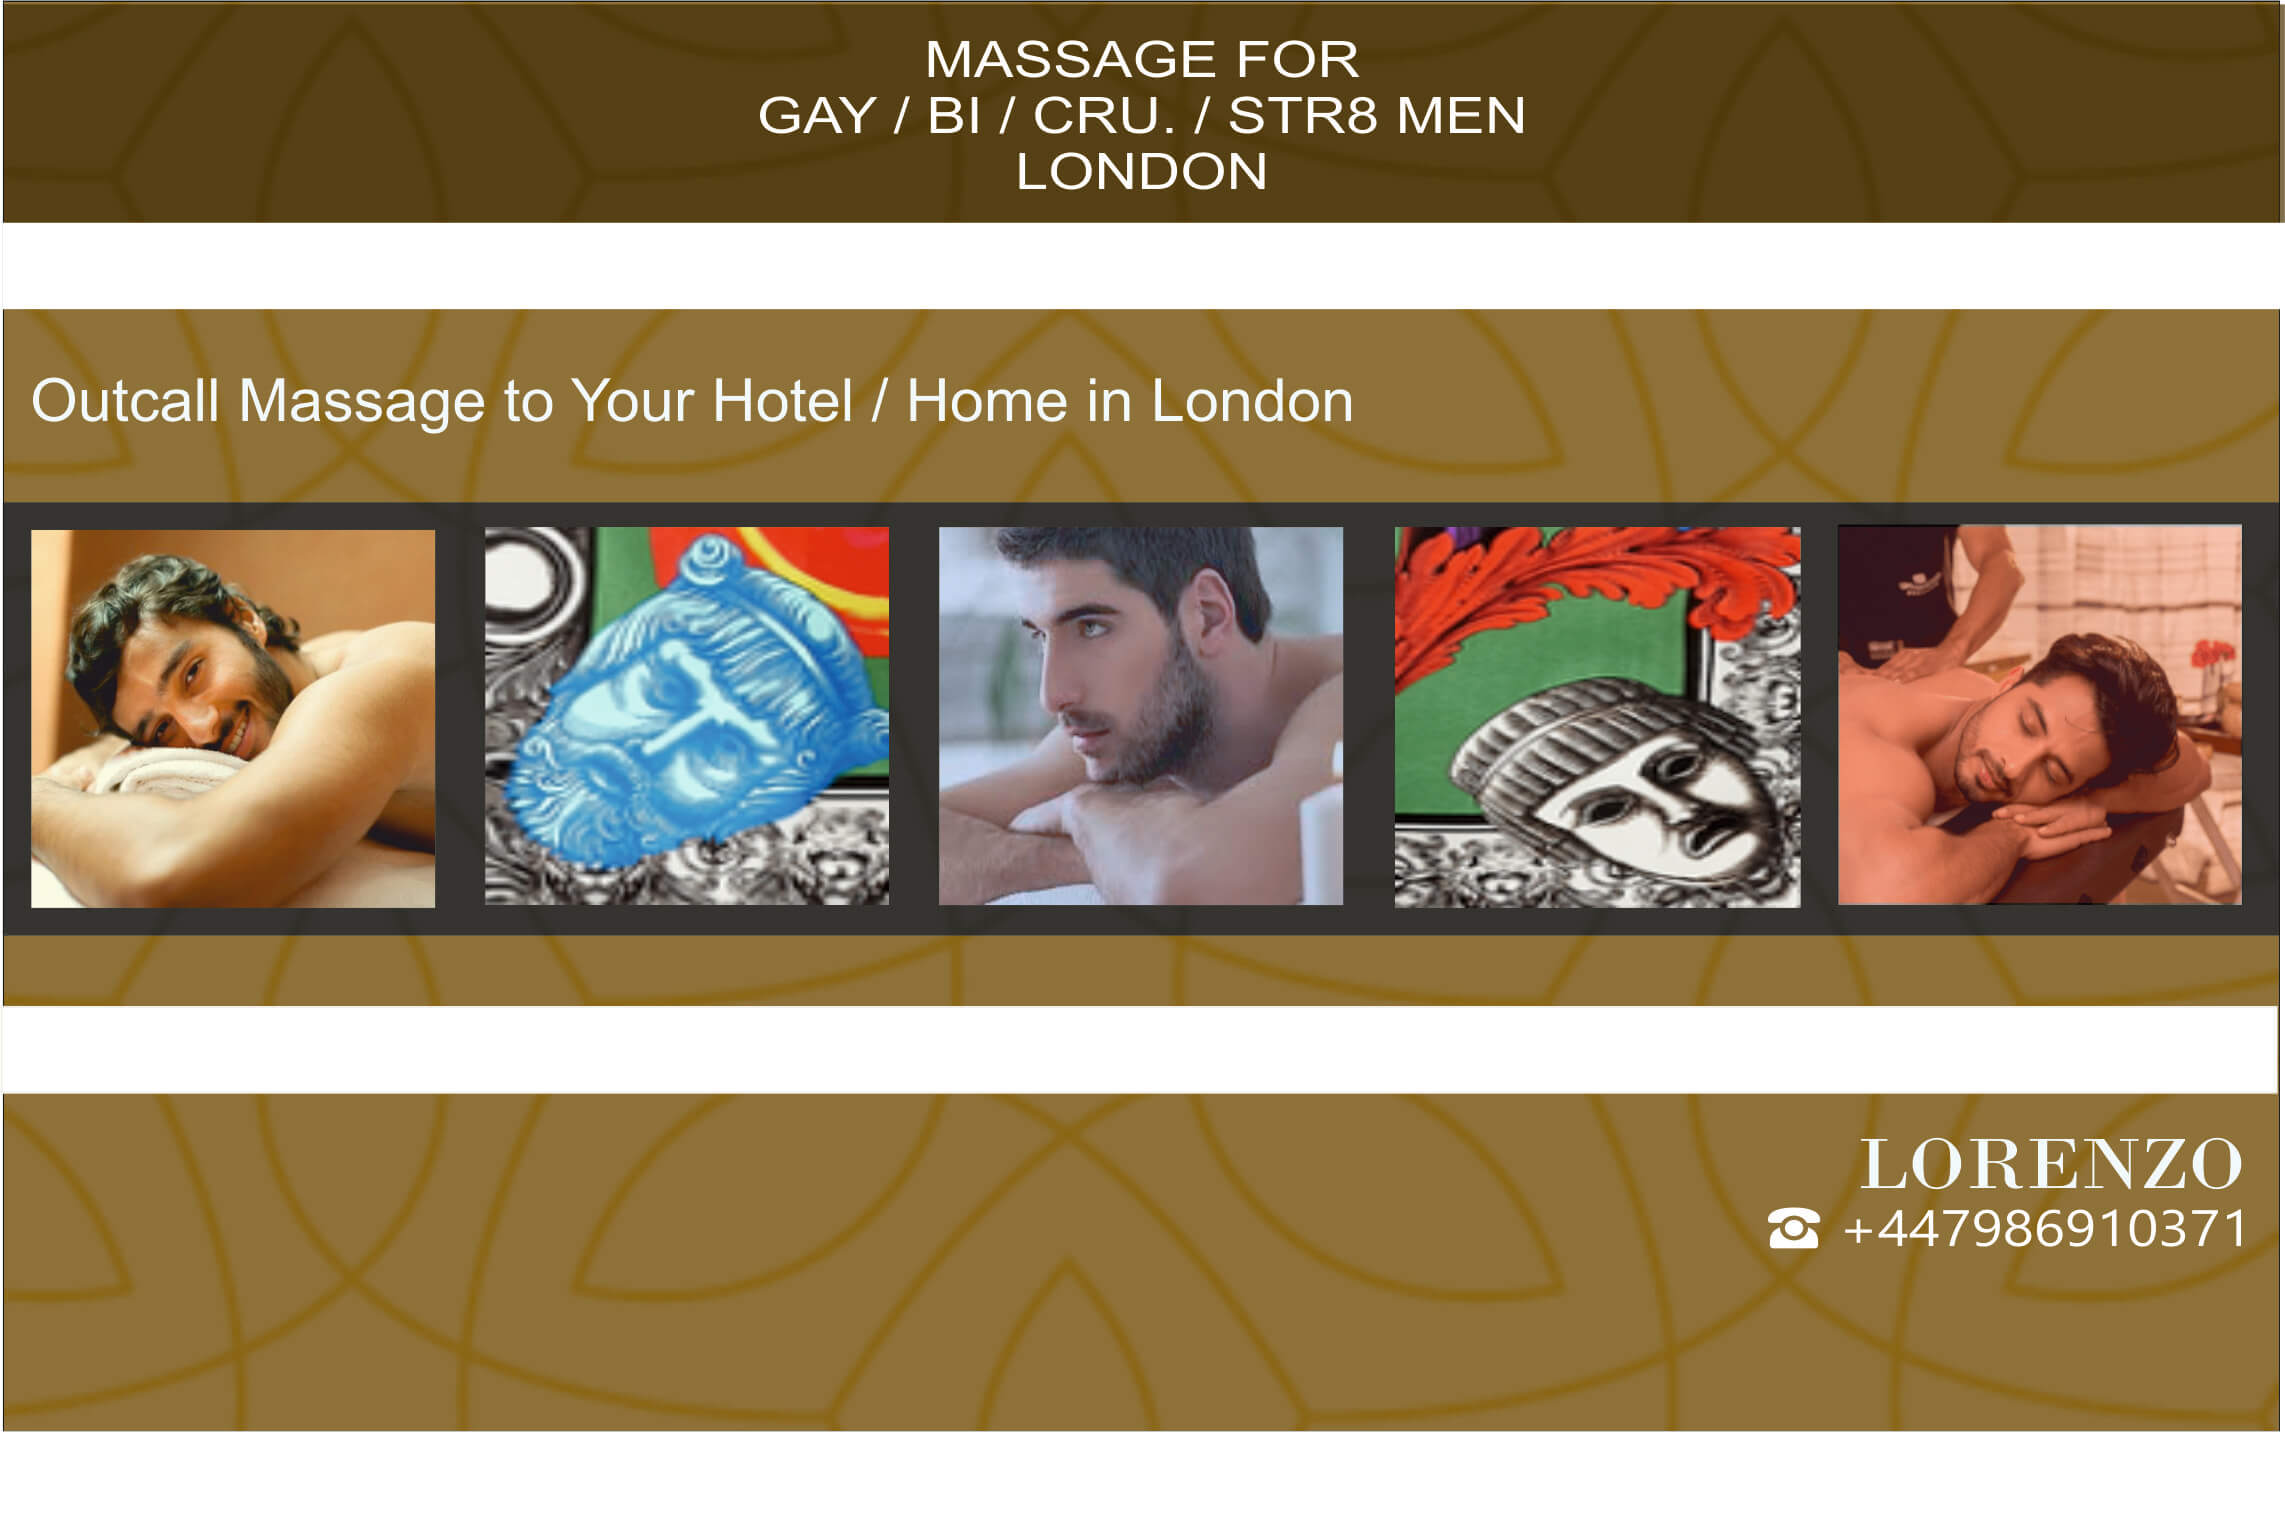 male massage london gay male massage hotel home massage visiting massage massage near me now  hour massage minute massage hotel massage london male to male massage london home massage   (18)